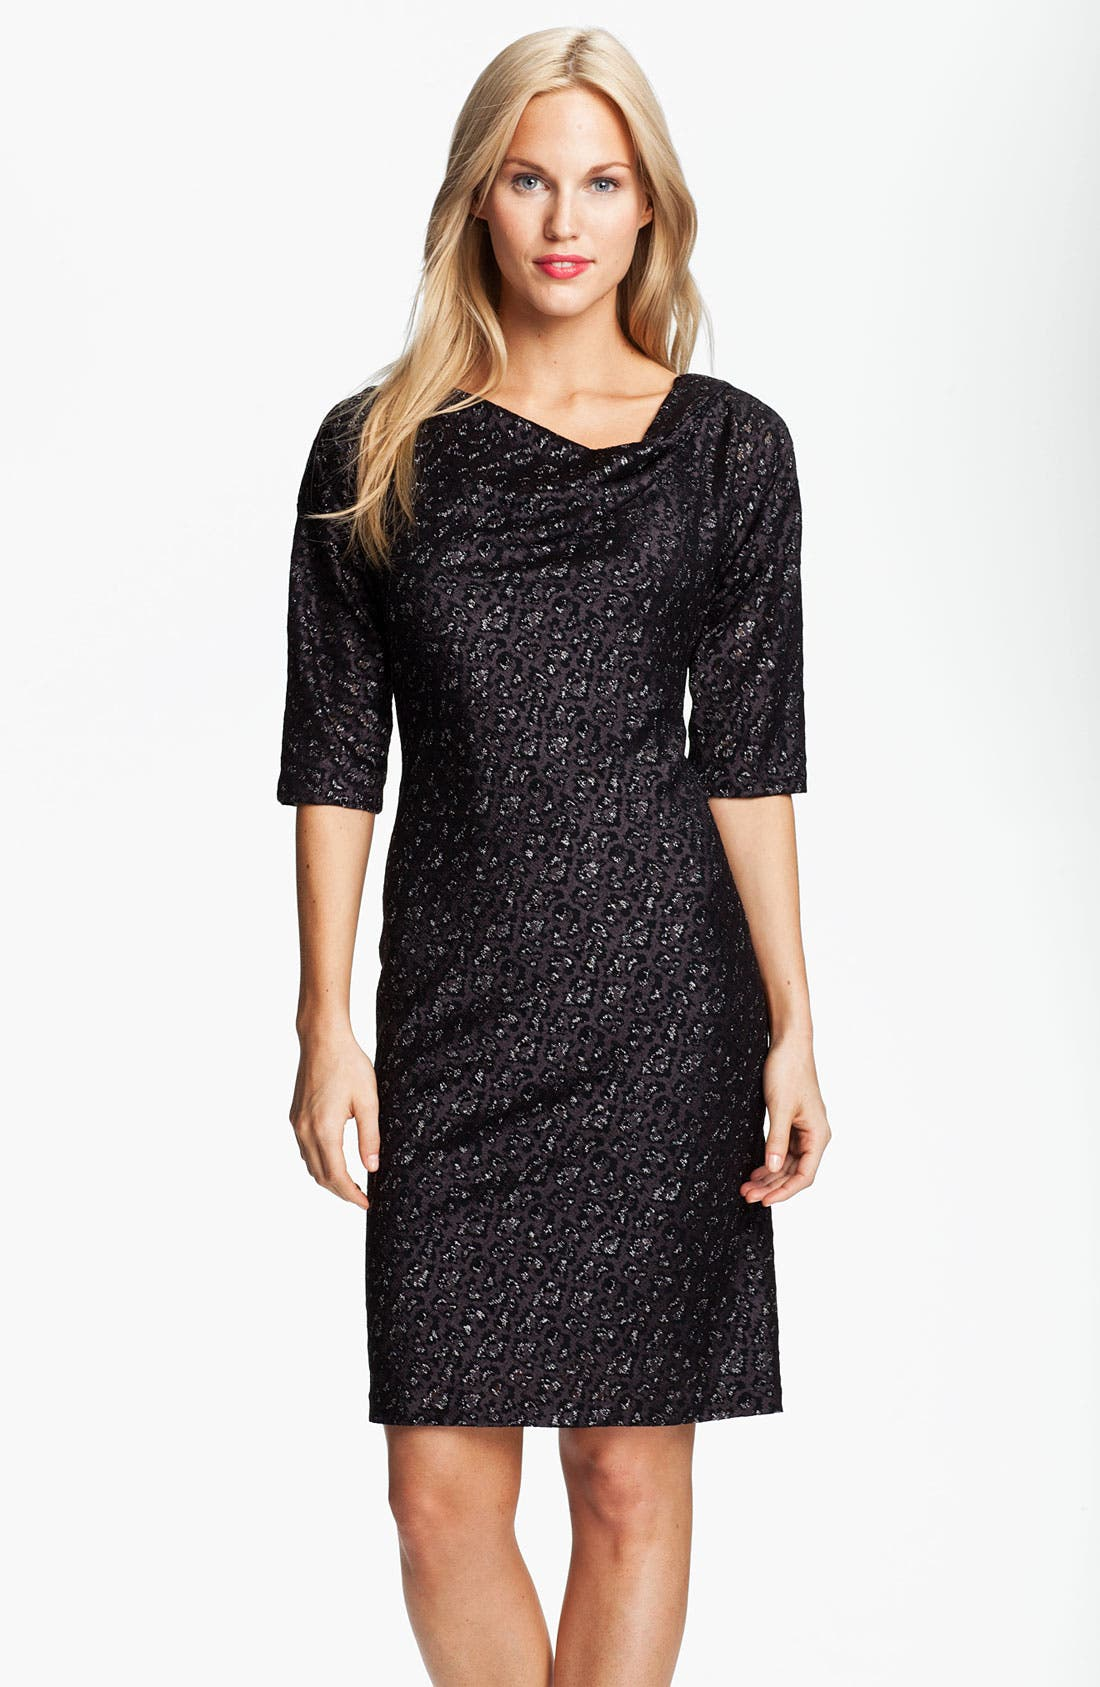 Alternate Image 1 Selected - Adrianna Papell Cowl Neck Metallic Jacquard Dress